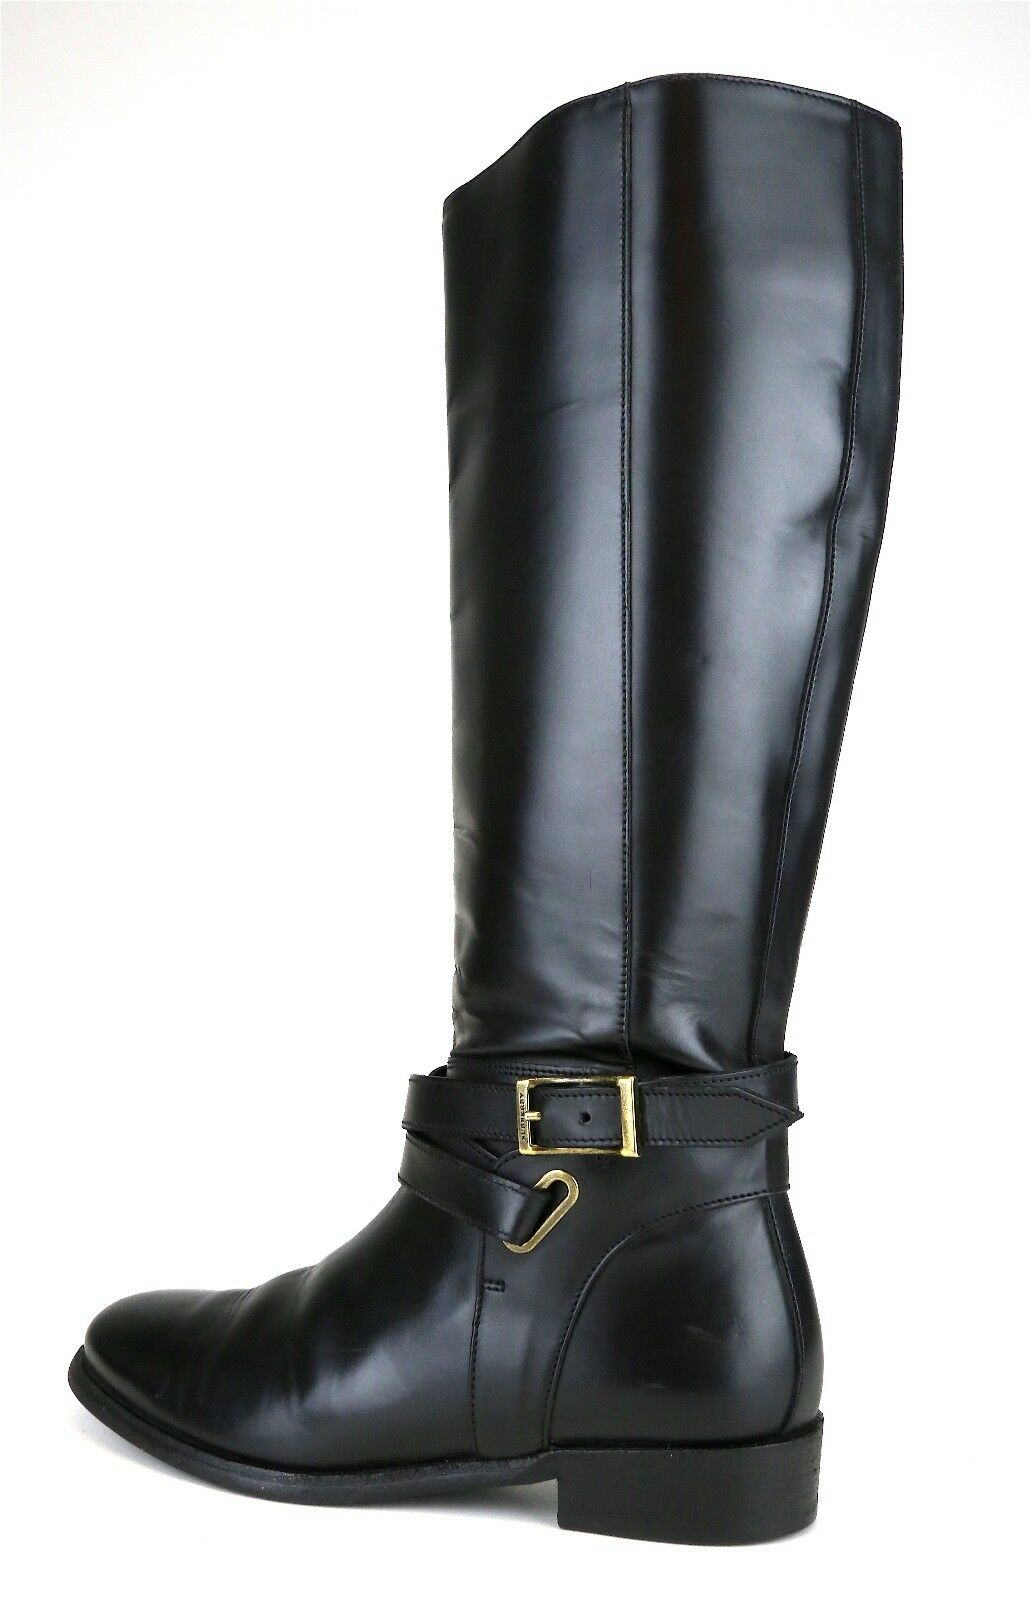 Burberry Burberry Burberry Adelaide Bridal Leather Riding Boots Black Women Sz 38 EUR 5029  1b0780